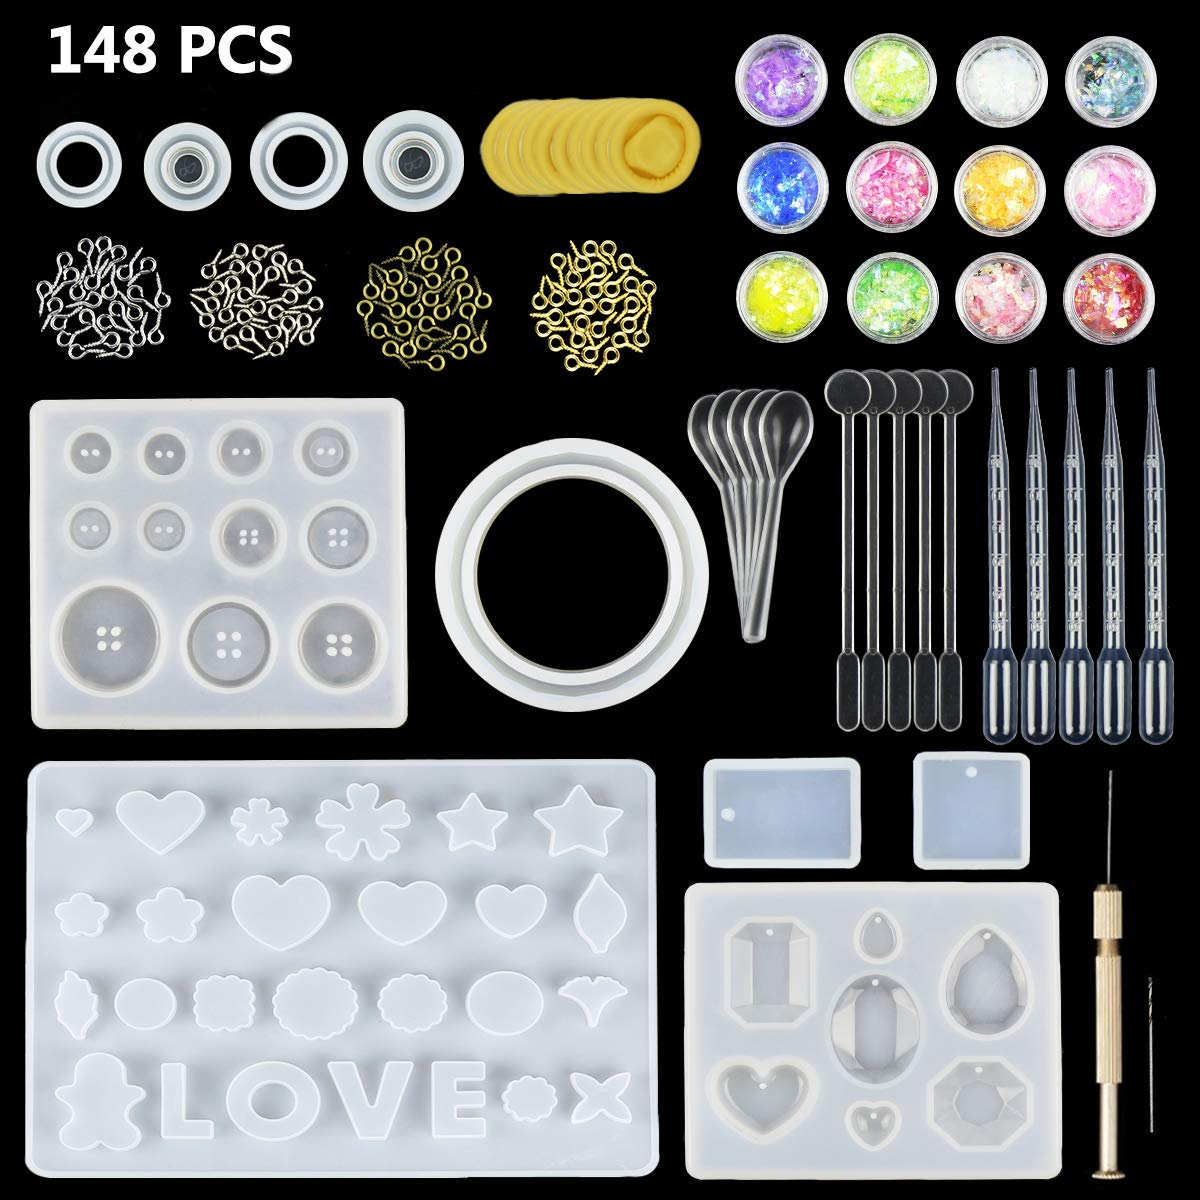 JOFAMY 10 Pack Jewelry Casting Molds Silicone Clear Molds for Resin with 100PCS Screw Eye Pins,5 Plastic Stirrers,5 Plastic Spoons,5 Plastic Droppers, Hand Twist Drill, Shell Paper Flakes& fingerstall E4ulife